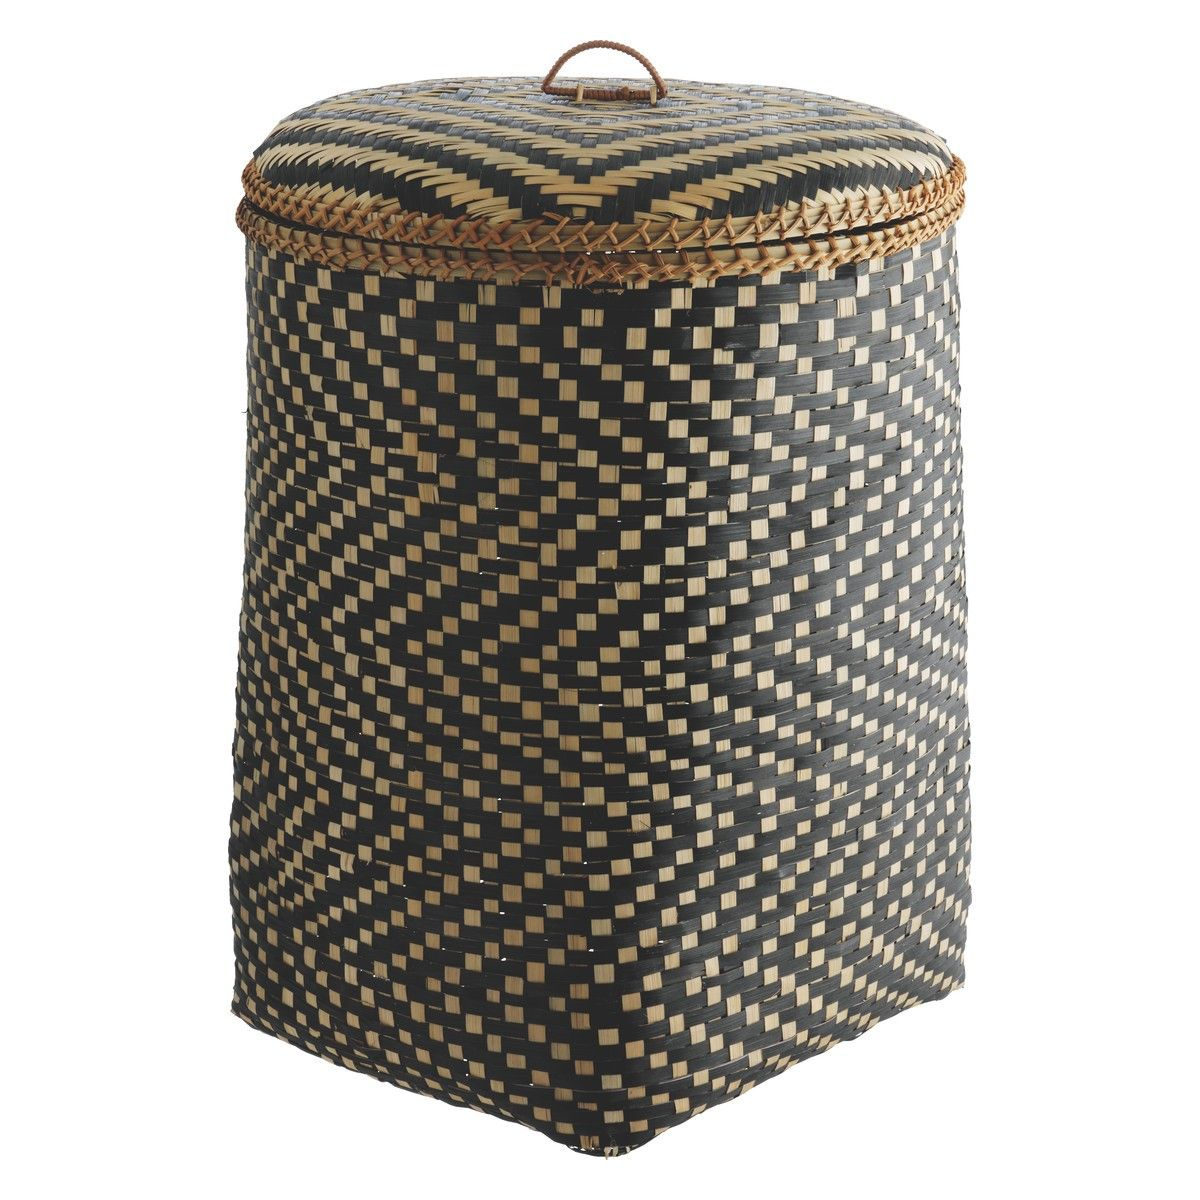 Wonderful Laundry Bags And Baskets Part - 12: IDAHO Bamboo Patterned Laundry Basket With Lid